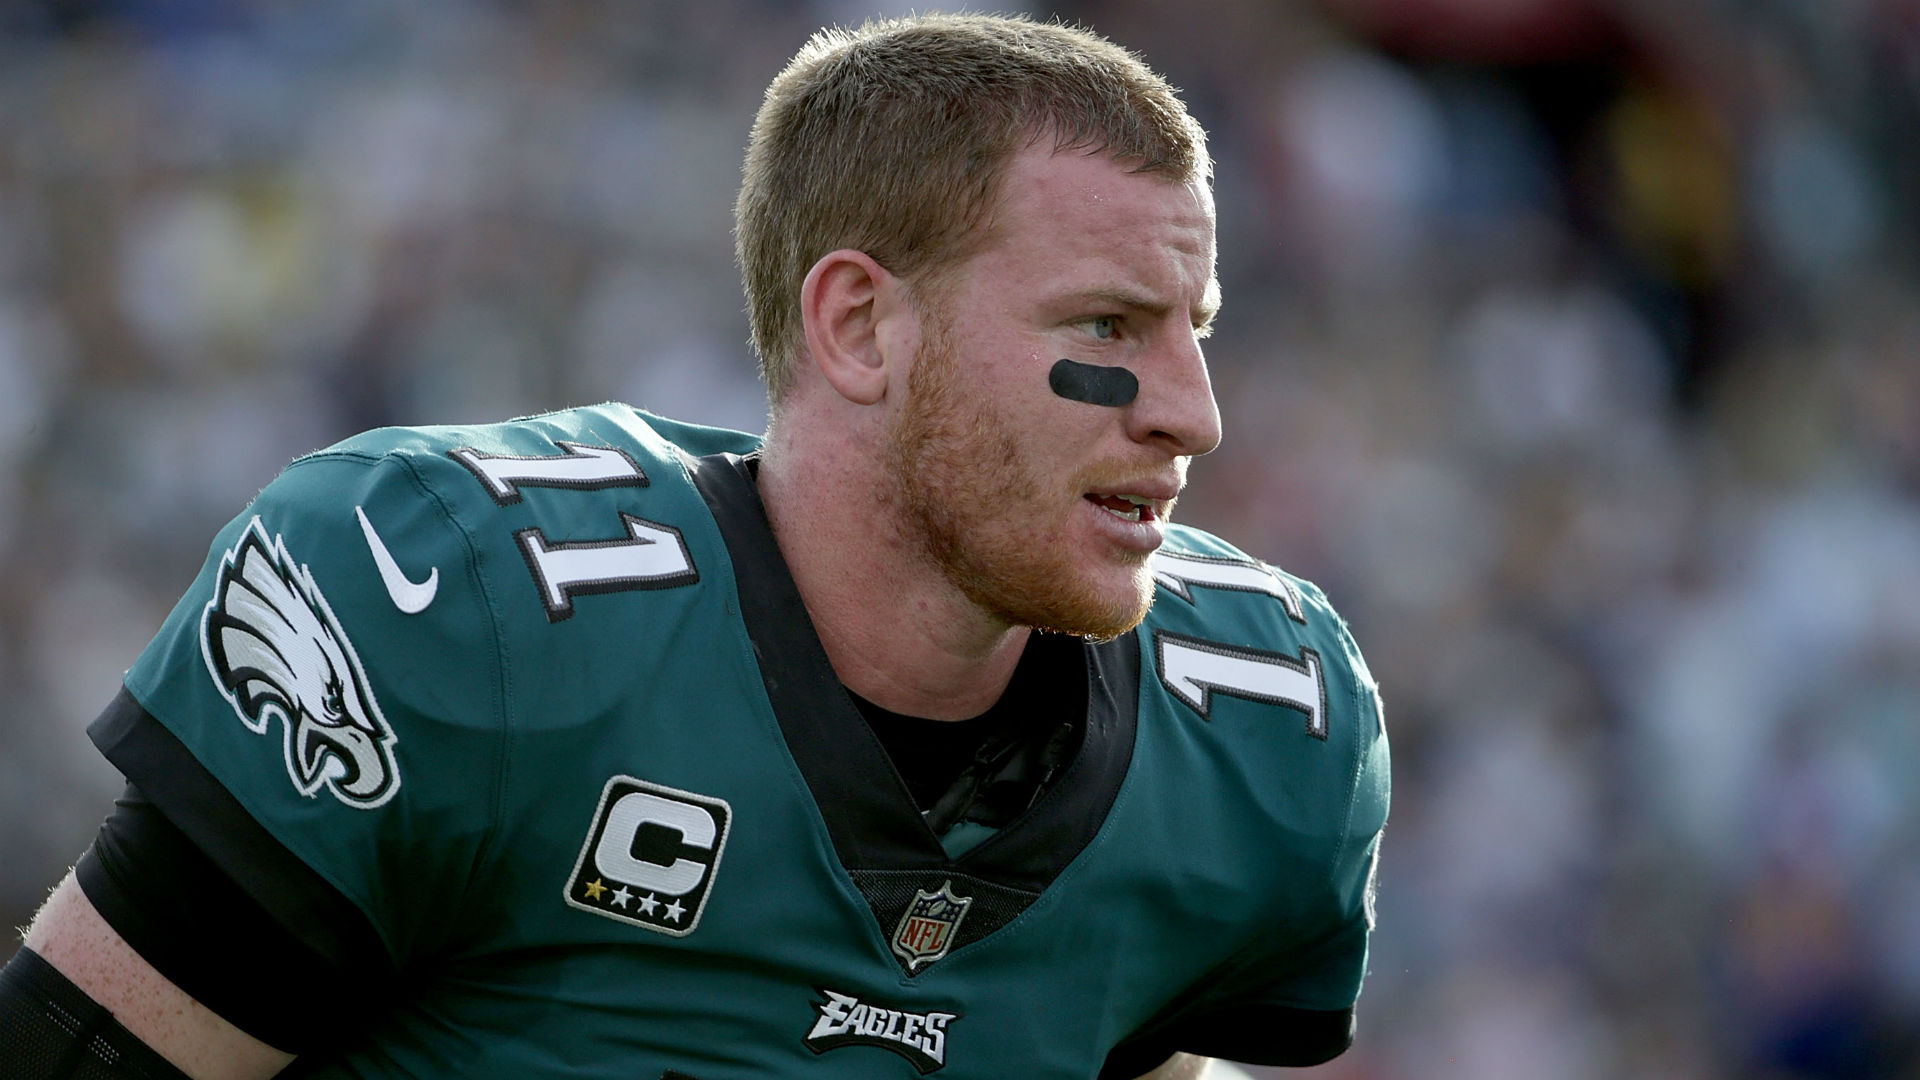 Eagles beware: Carson Wentz's fast track to Week 1 return is risky